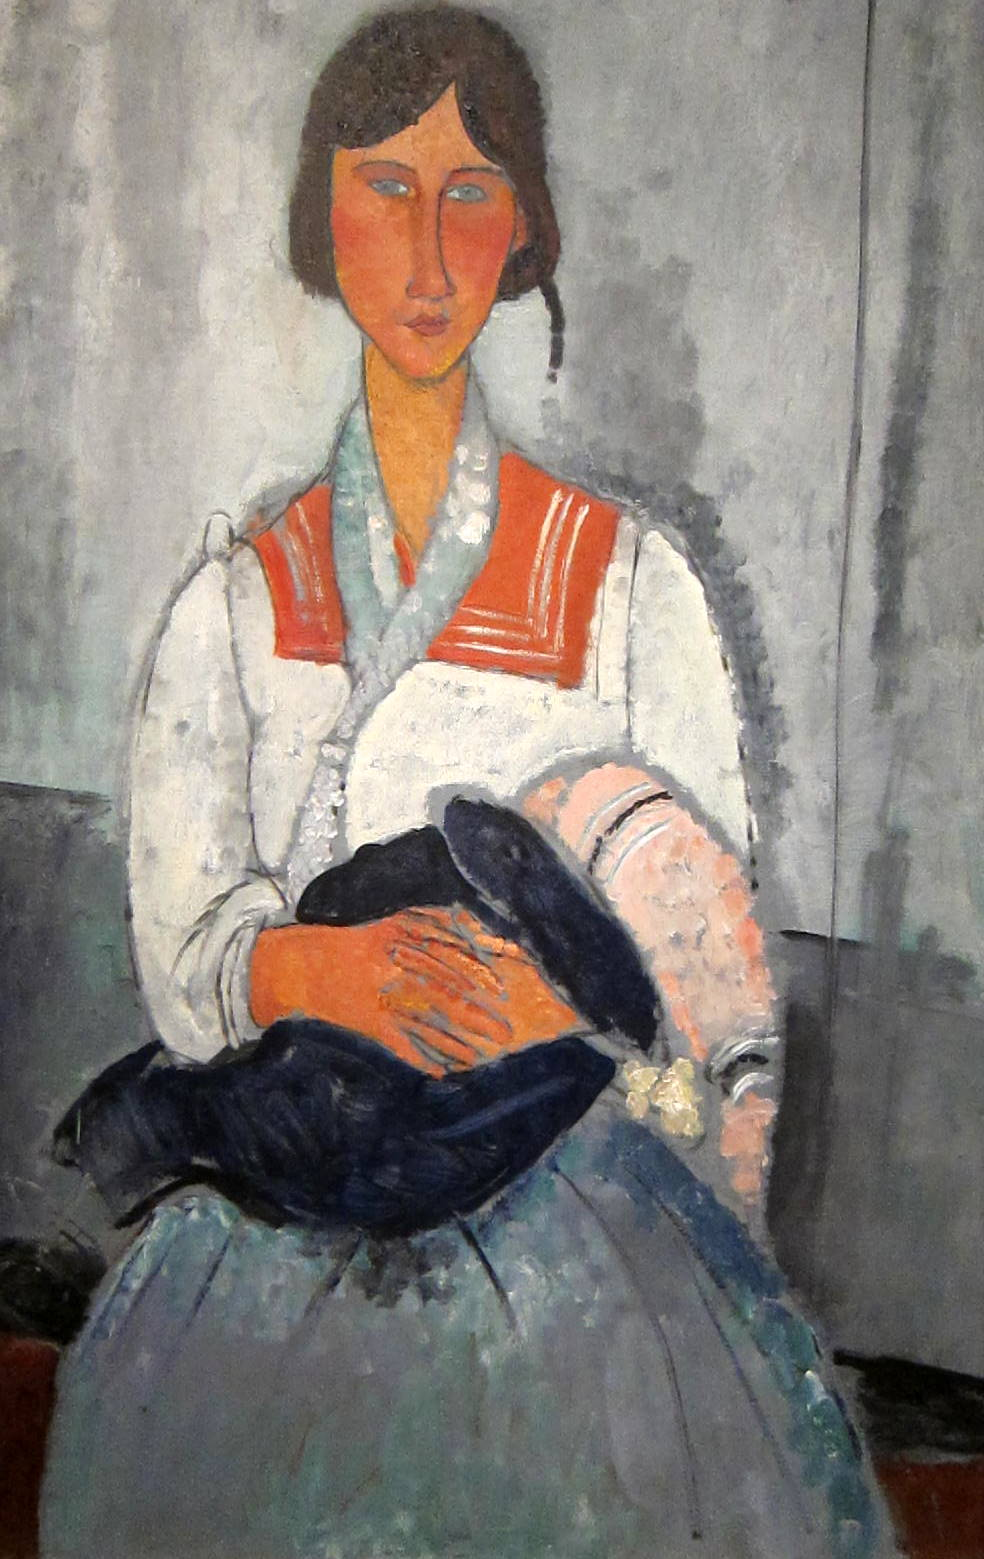 Gypsy Woman with a Baby, 1919 by Amedeo Modigliani